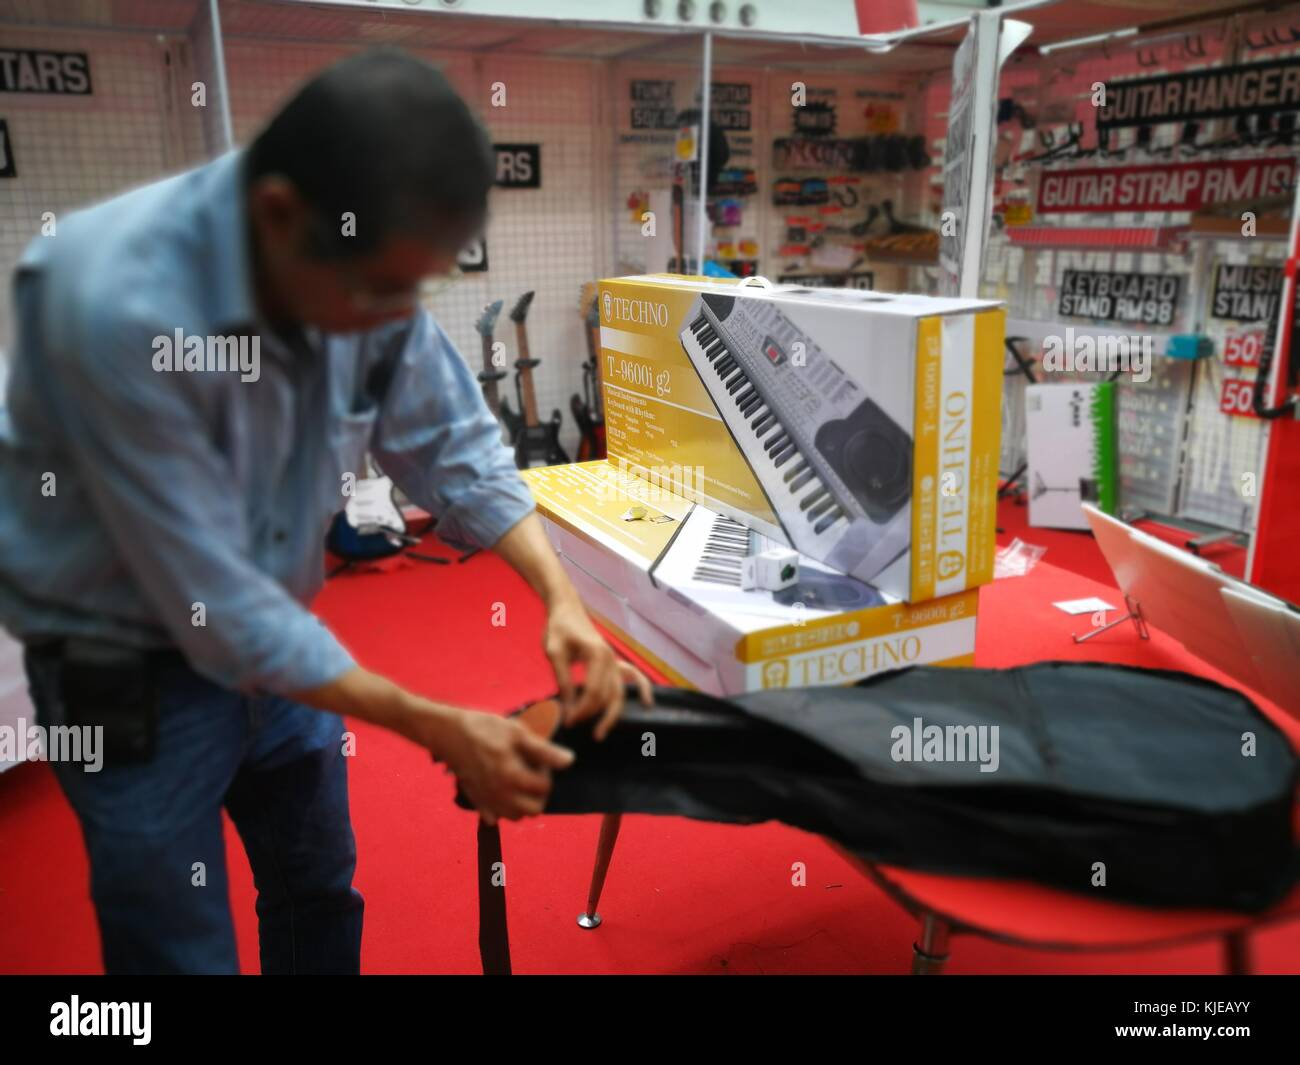 Selangor, Malaysia - 21 November 2017: Shop owner is packing the newly bought guitar into the case at Musical Instruments - Stock Image